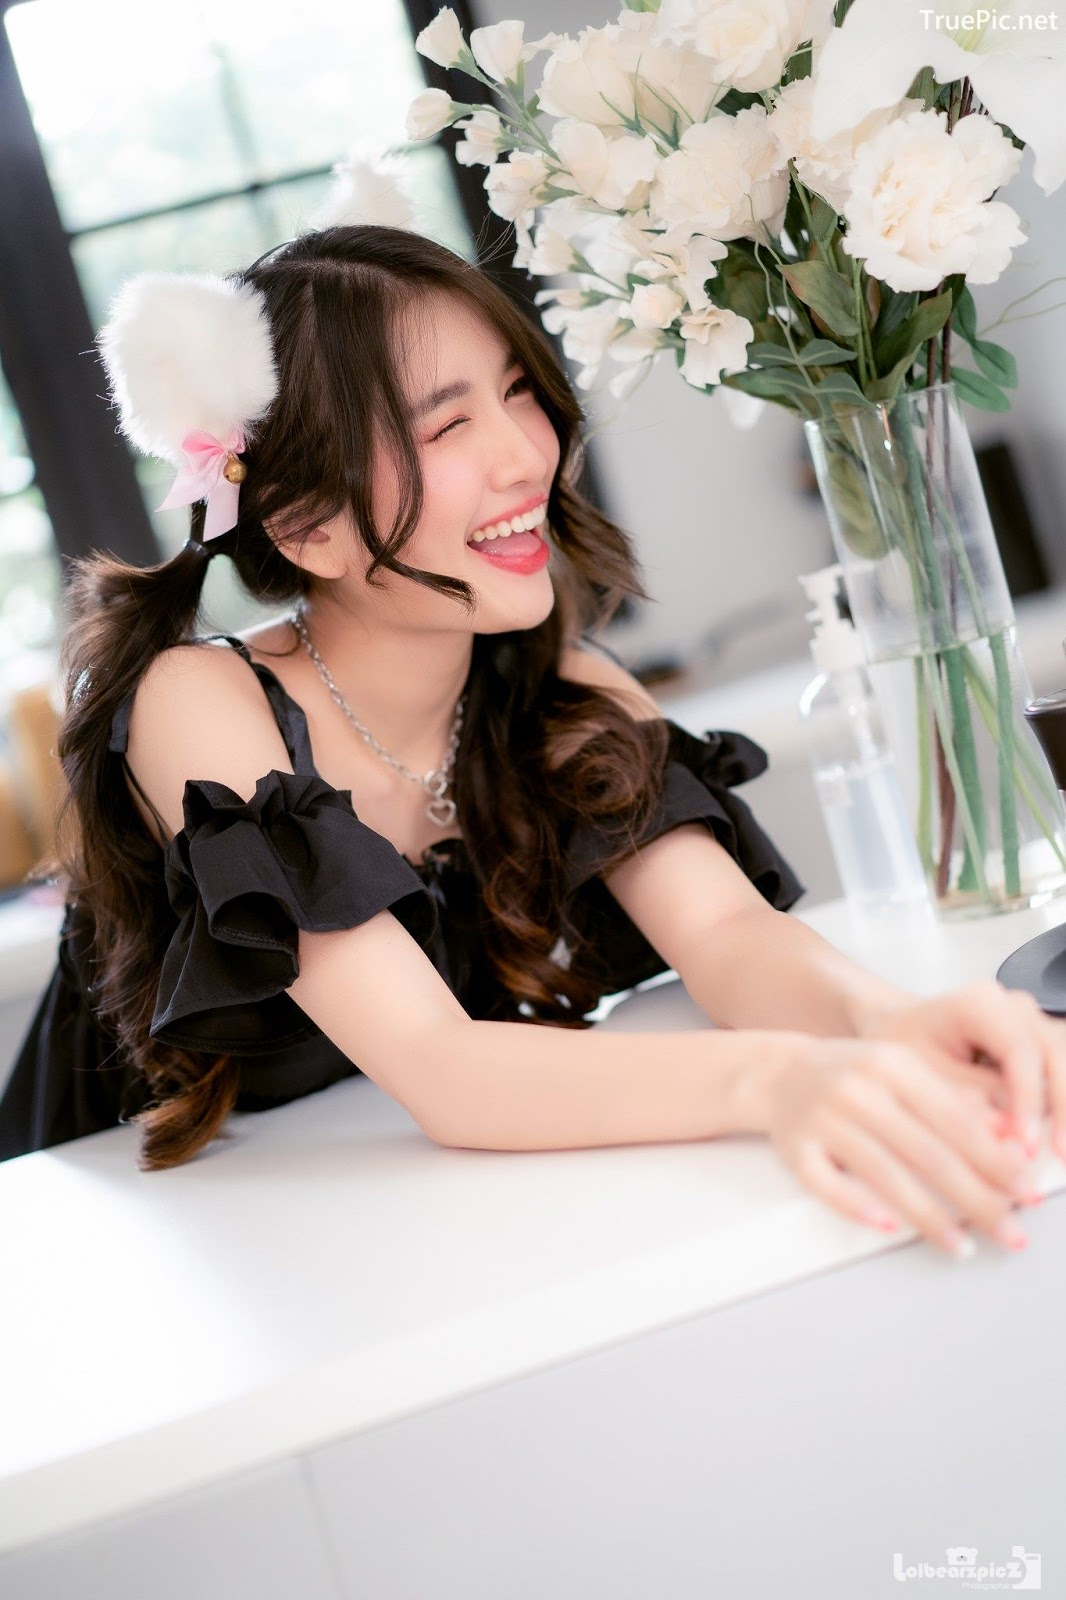 Image Thailand Model - Yatawee Limsiripothong - Busy Day of The Black Cat - TruePic.net - Picture-7